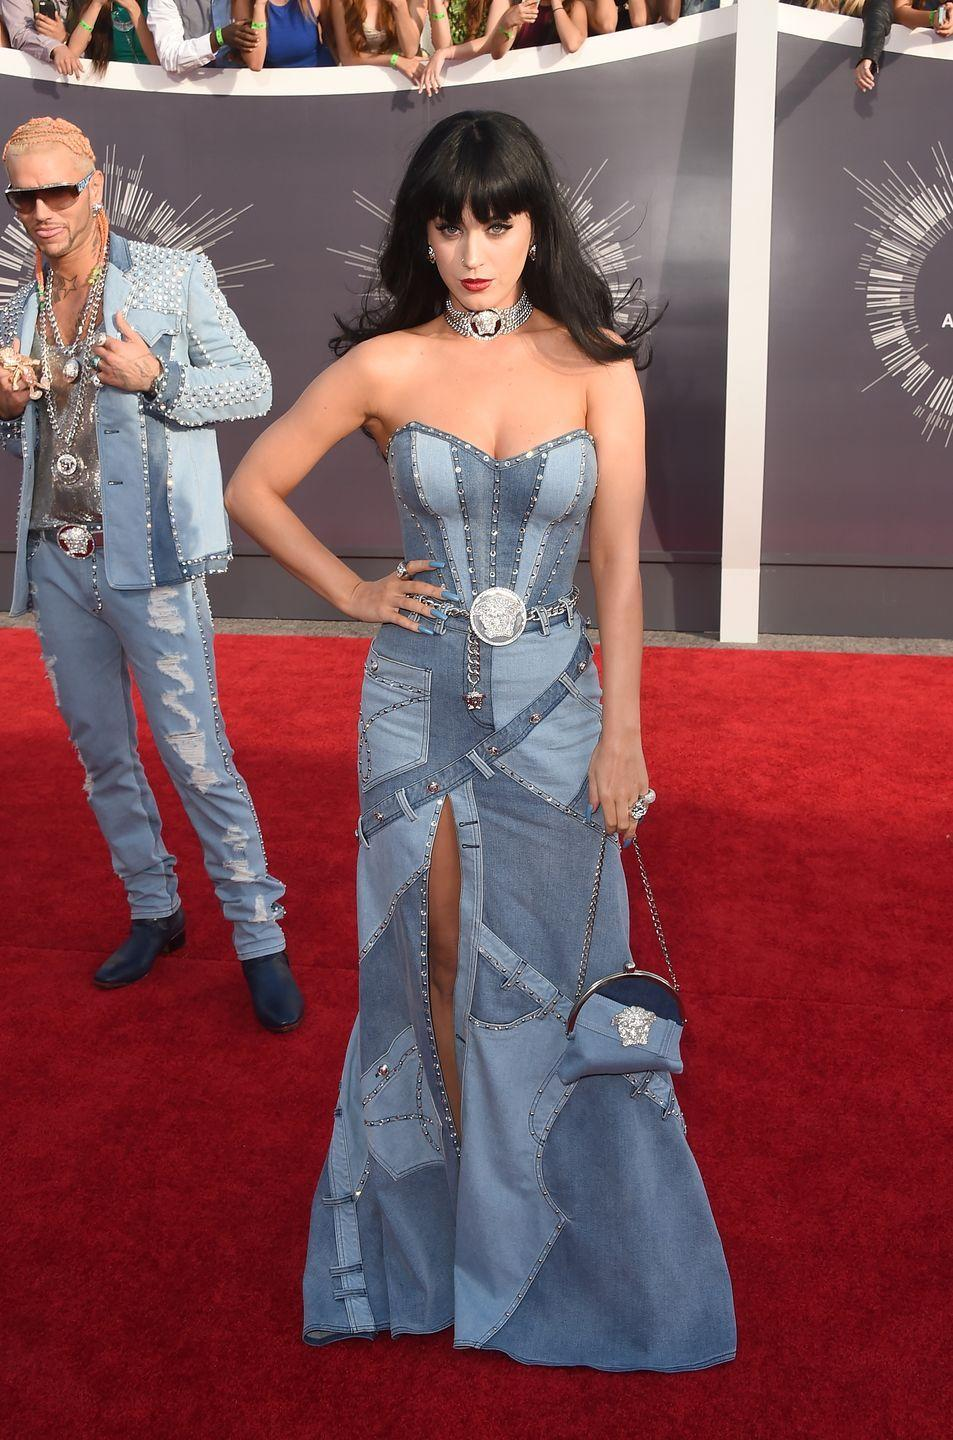 <p>Paying the ultimate homage to Britney Spears, Katy Perry looked pretty awesome in this double denim get-up.</p>